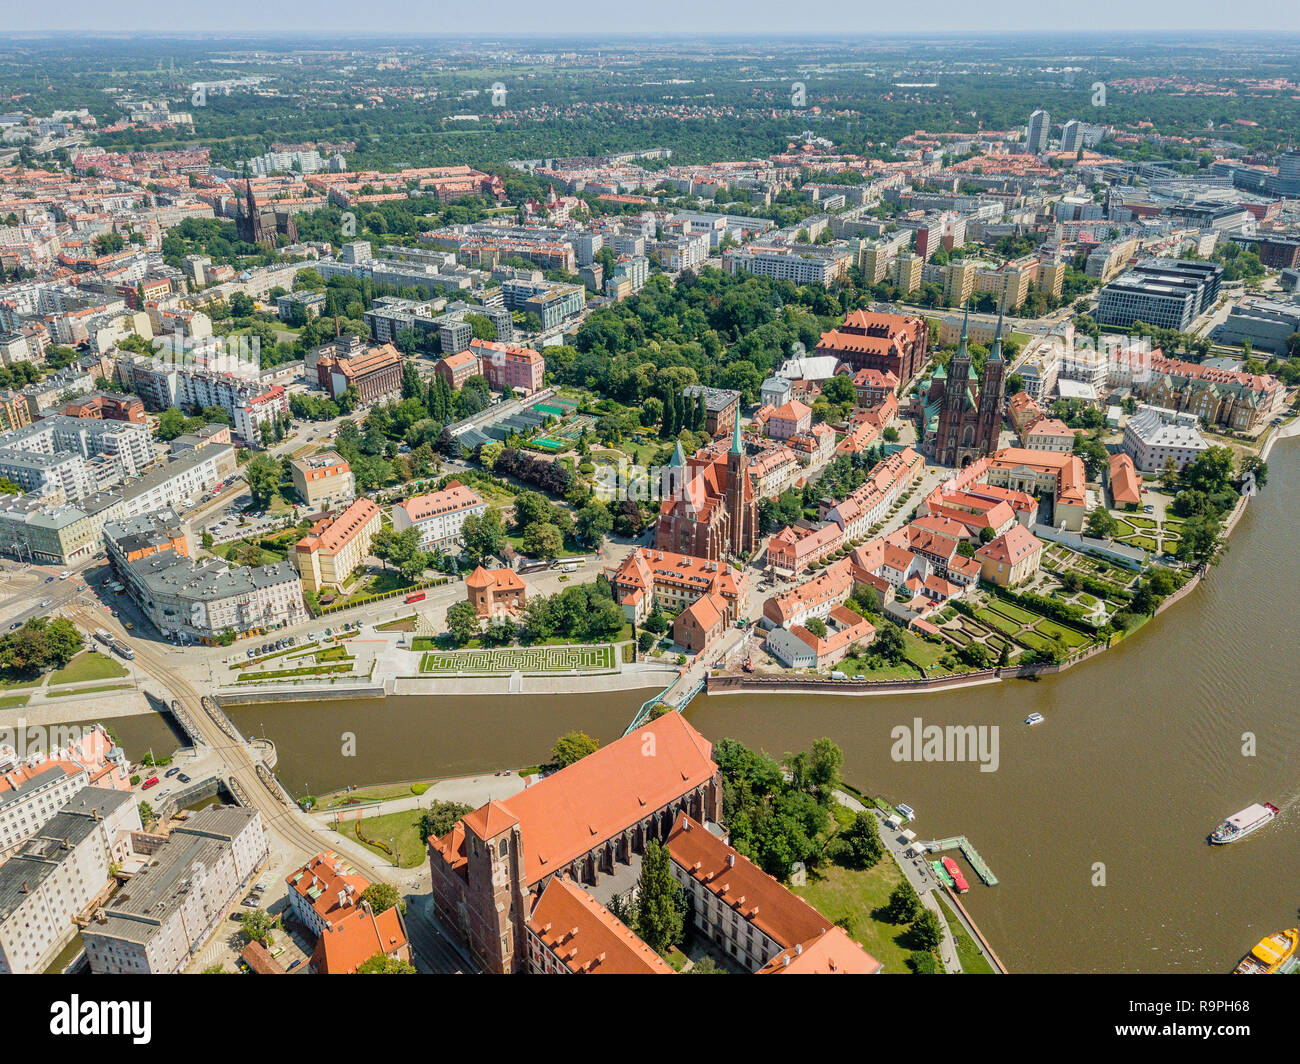 Aerial view of the oldest, historic part of Wroclaw, Poland